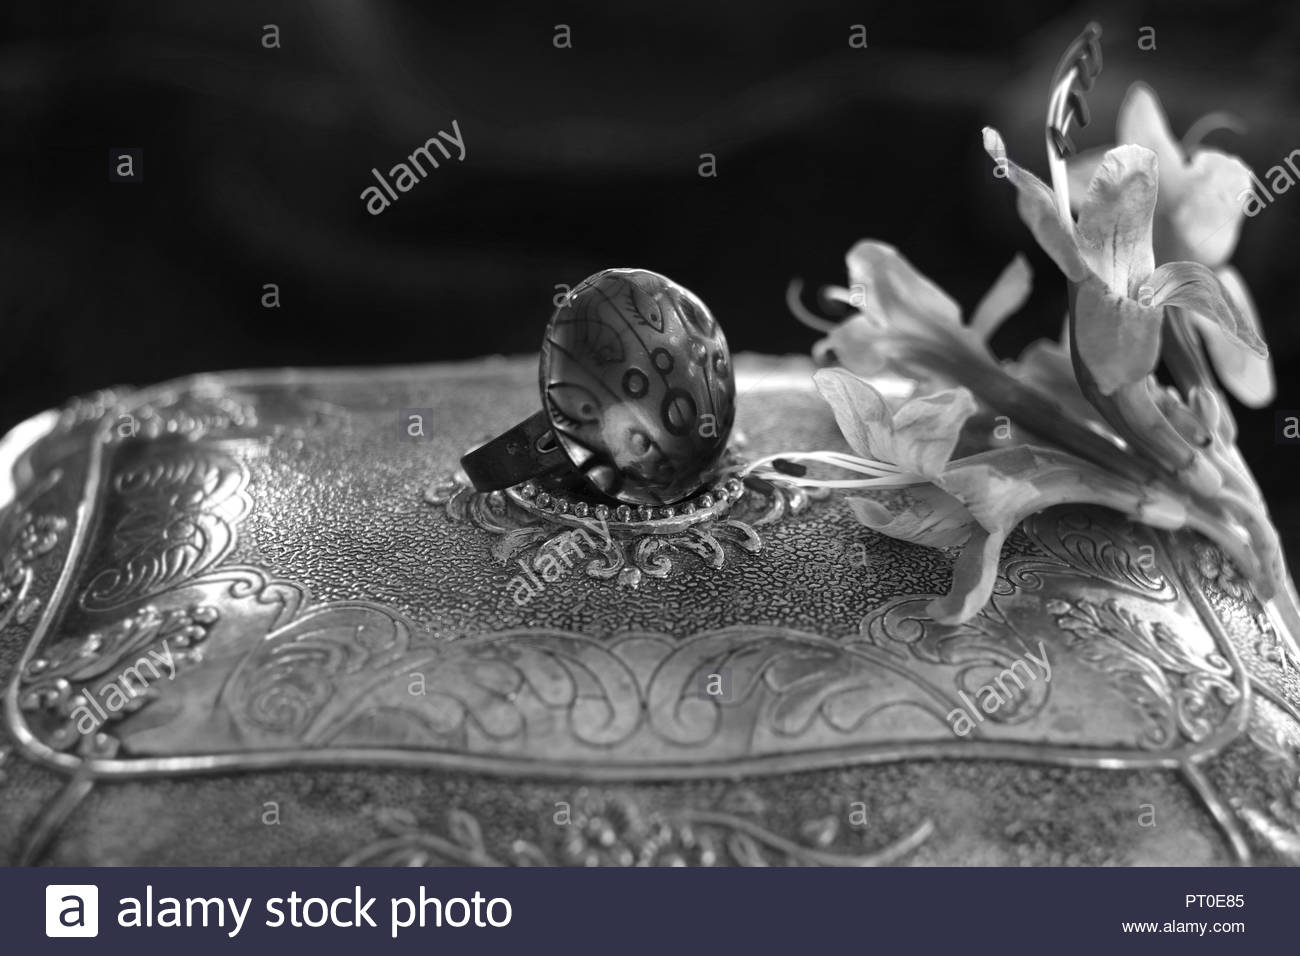 ARTISTIC COMPOSITION OF WOMEN'S JEWELLERY AND STYLE, ATHENS, GREECE Stock Photo